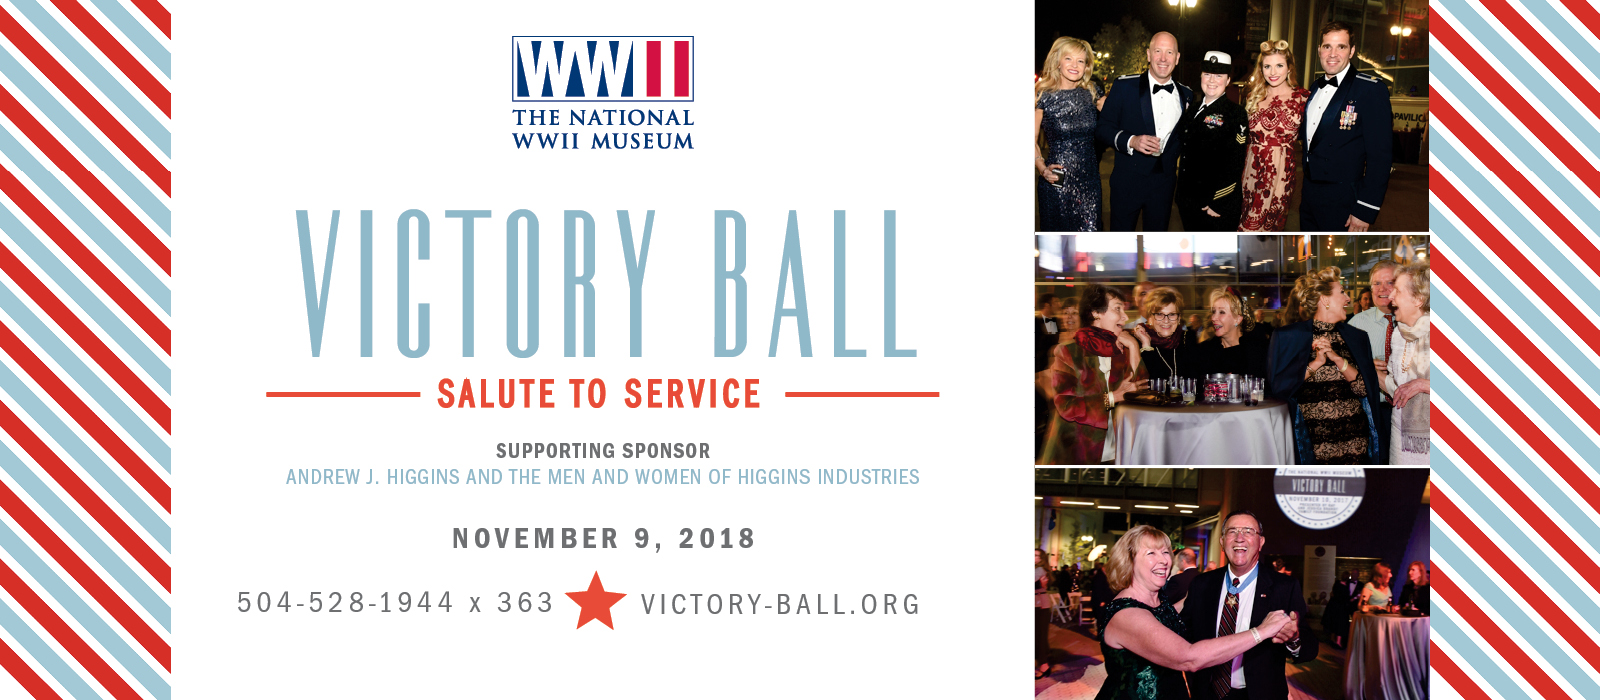 Victory Ball at The National WWII Museum in New Orleans on November 10, 2017